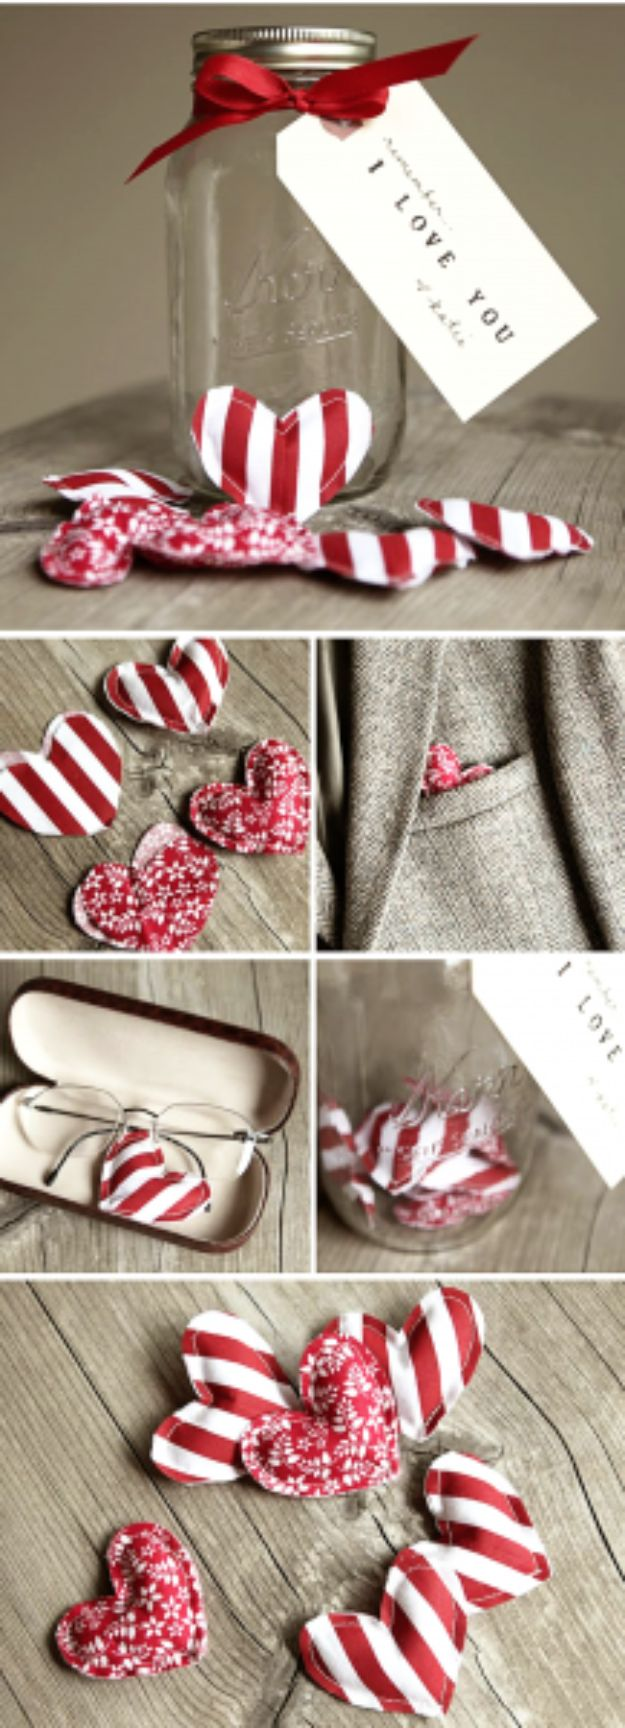 DIY Valentines Day Gifts for Her - Remember I Love You - Cool and Easy Things To Make for Your Wife, Girlfriend, Fiance - Creative and Cheap Do It Yourself Projects to Give Your Girl - Ladies Love These Ideas for Bath, Yard, Home and Kitchen, Outdoors - Make, Don't Buy Your Valentine